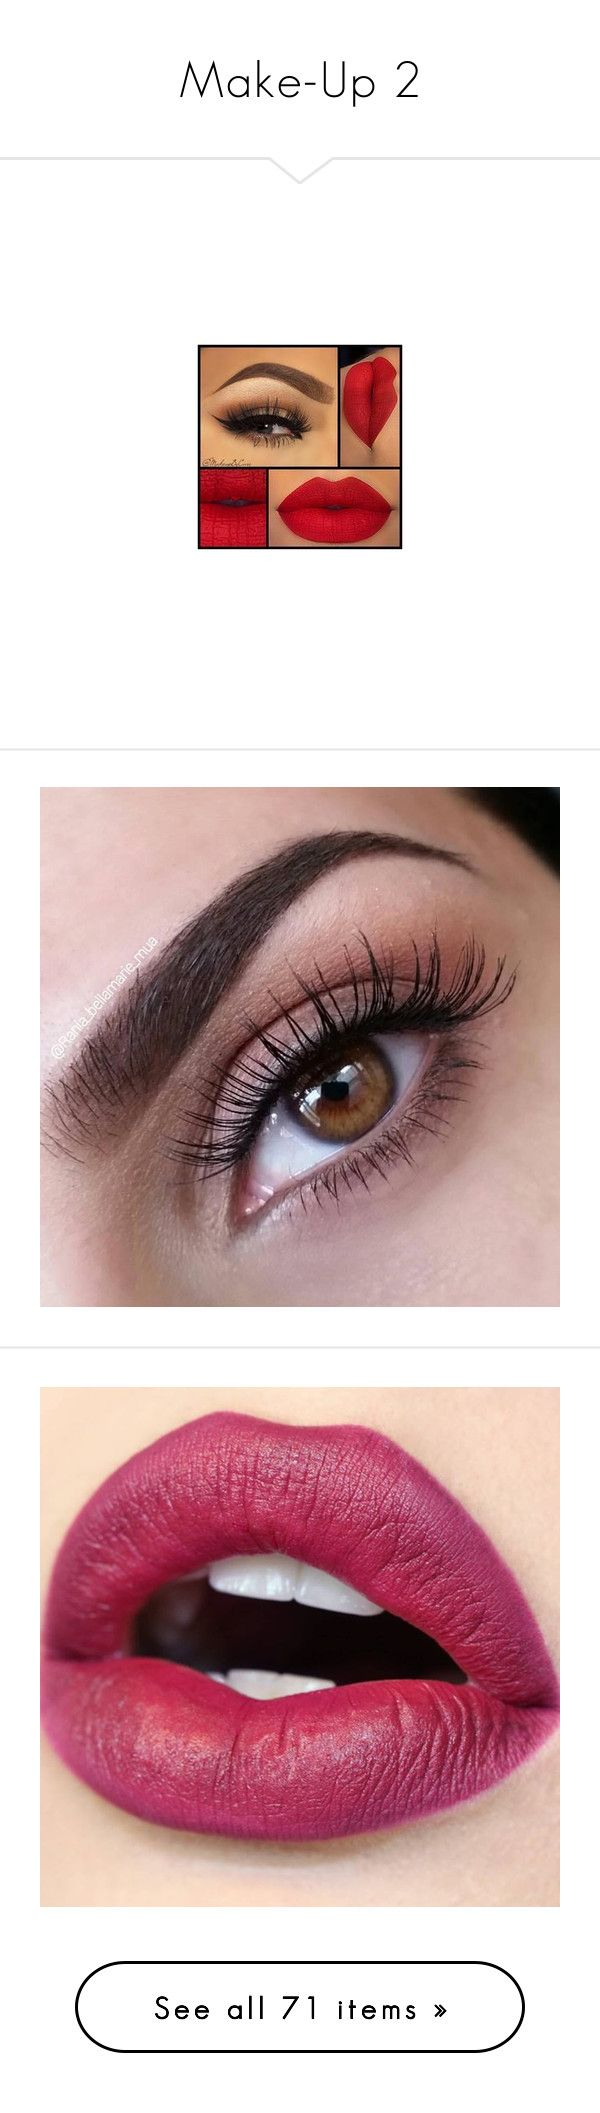 """""""Make-Up 2"""" by gisella-jb-pintos ❤ liked on Polyvore featuring beauty products, makeup, lips, beauty, eyes, eye makeup, anastasia beverly hills, anastasia beverly hills cosmetics, brow makeup and eyebrow cosmetics"""